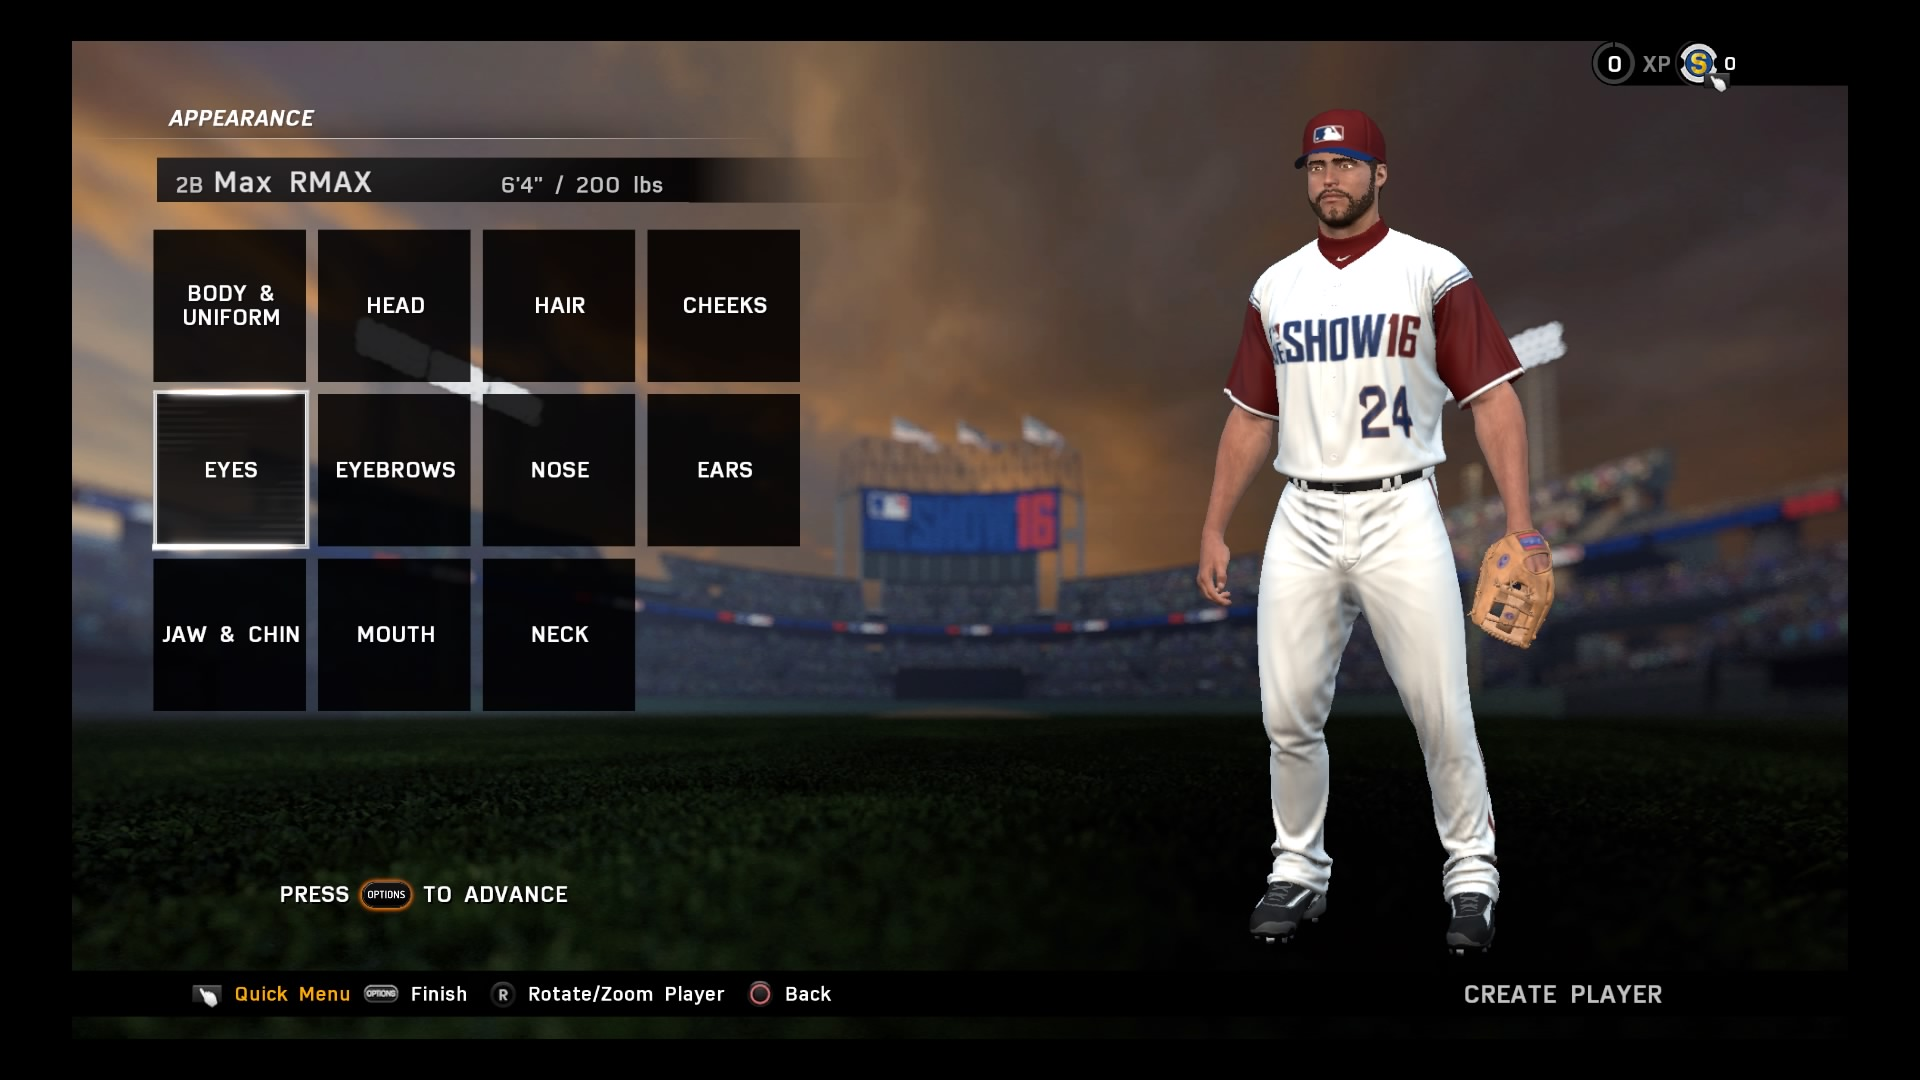 MLB(R) The Show(TM) 16